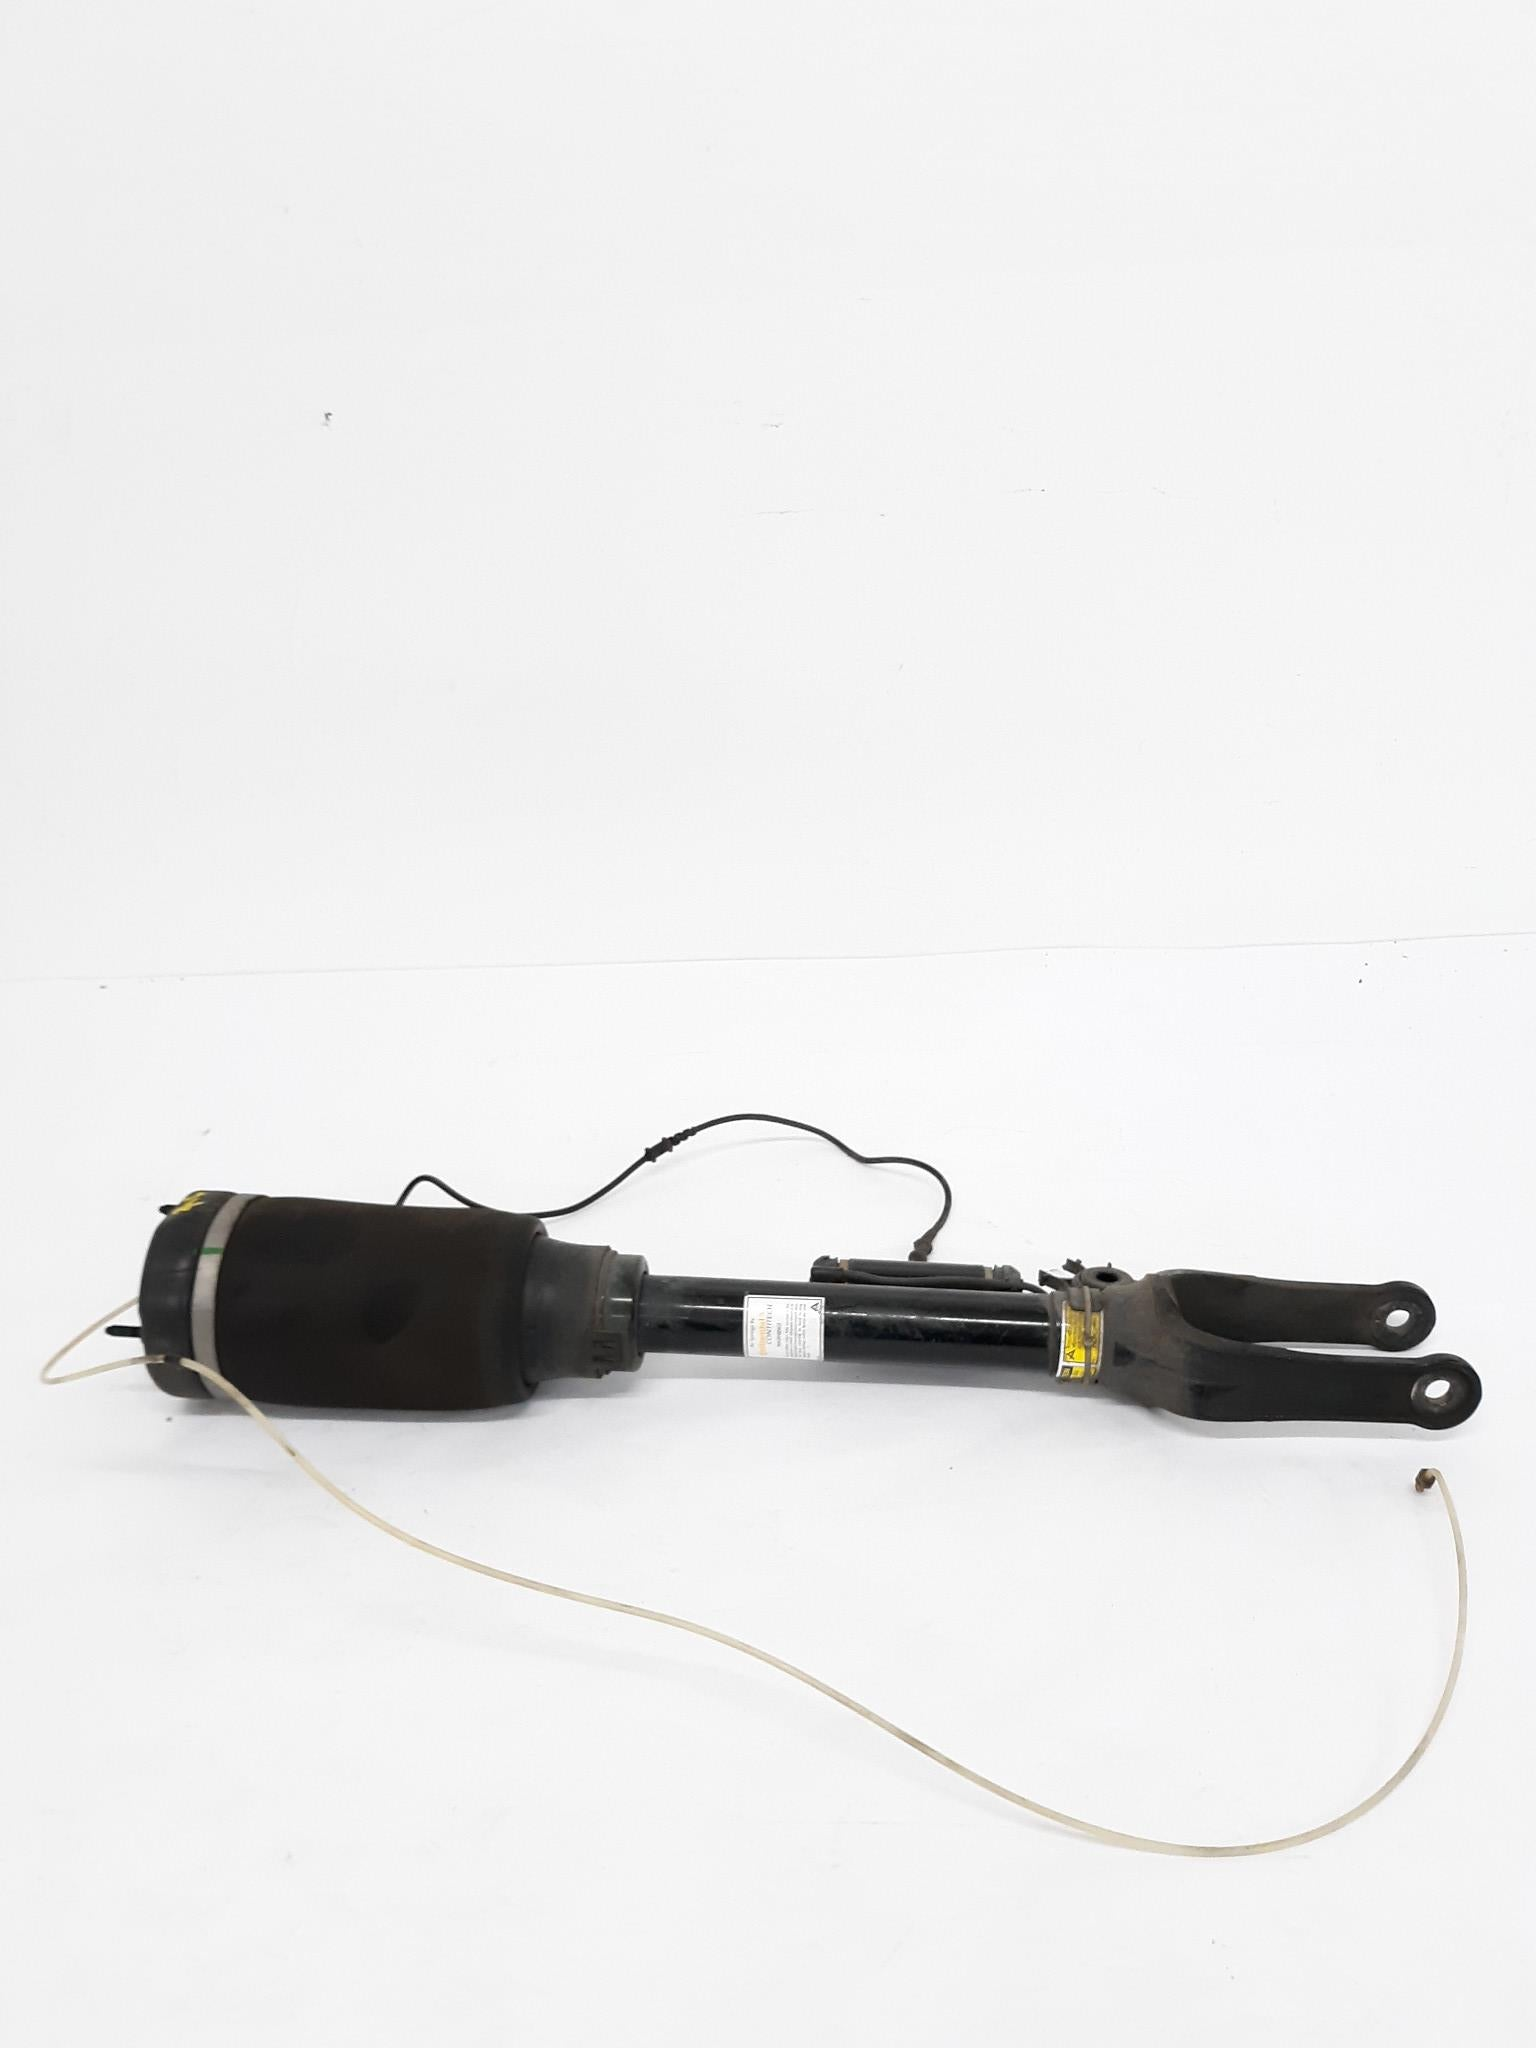 06 - 12 Mercedes X164 W164 ML320 Front Right Air Shock Strut Arnott - Click Receive Auto Parts